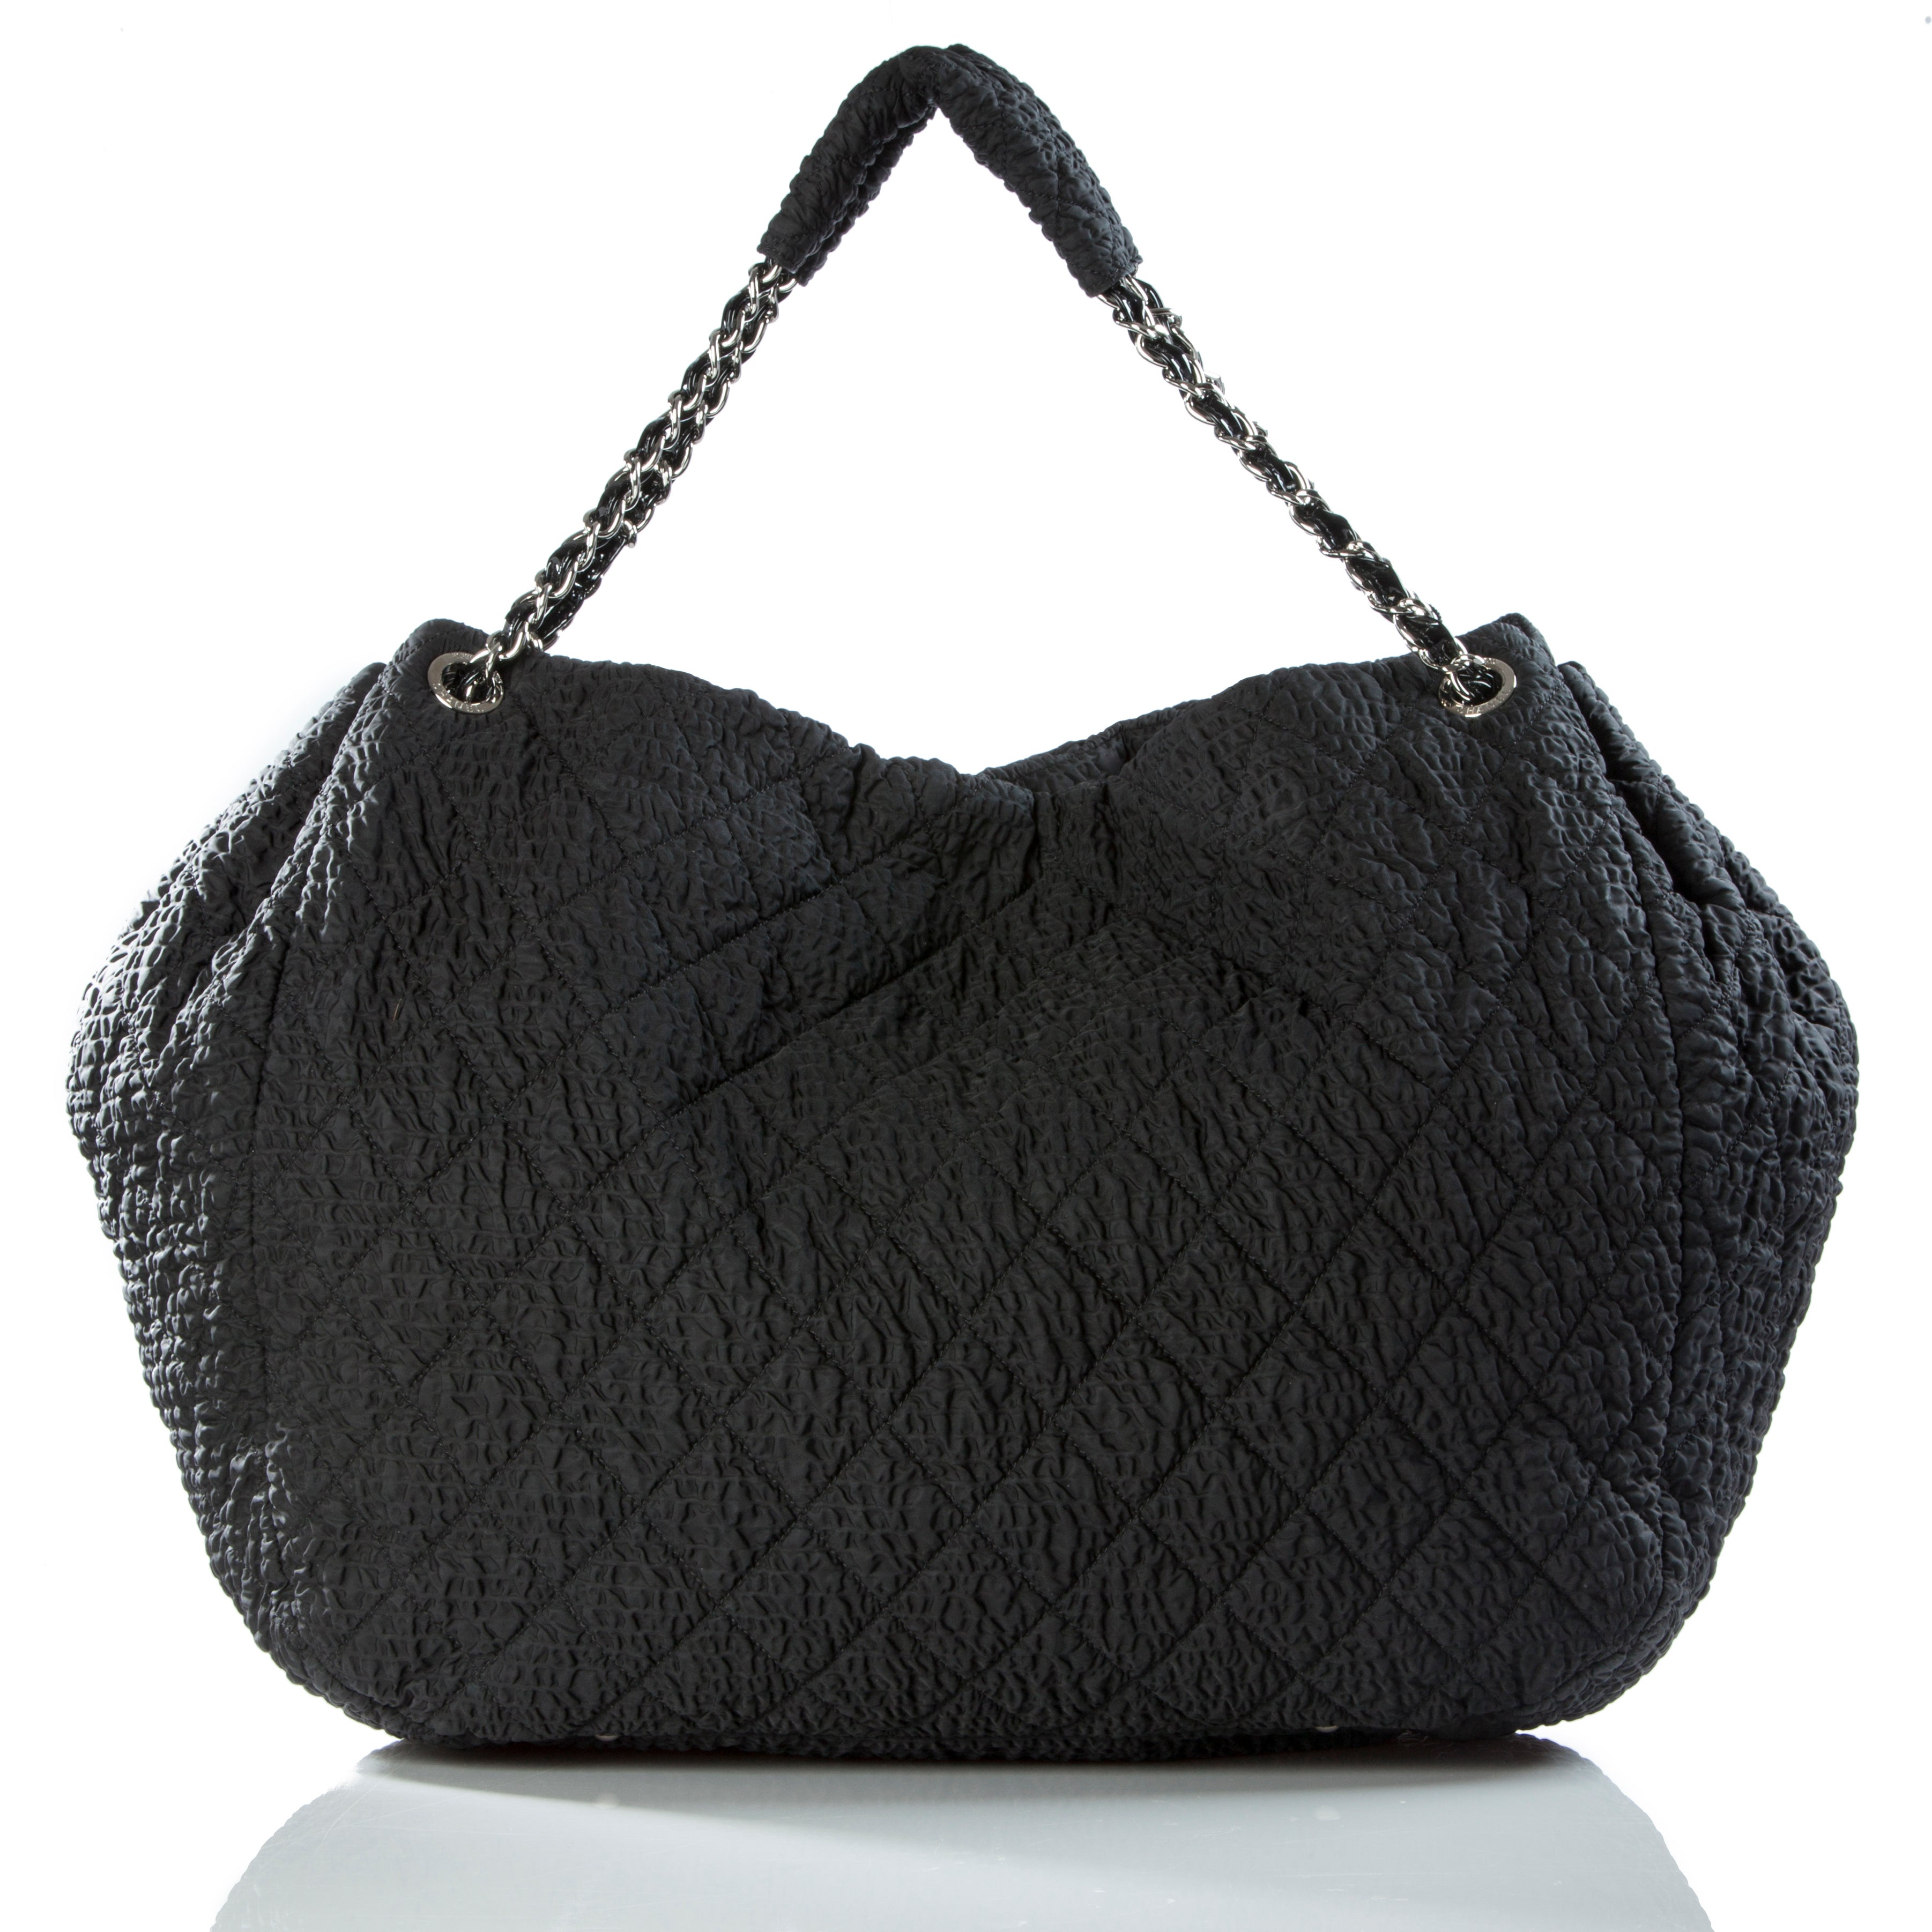 384699f3d975ec Chanel Coco Cabas Cabas Overnight Tote Black Microfiber Nylon Weekend Bag  For Sale at 1stdibs